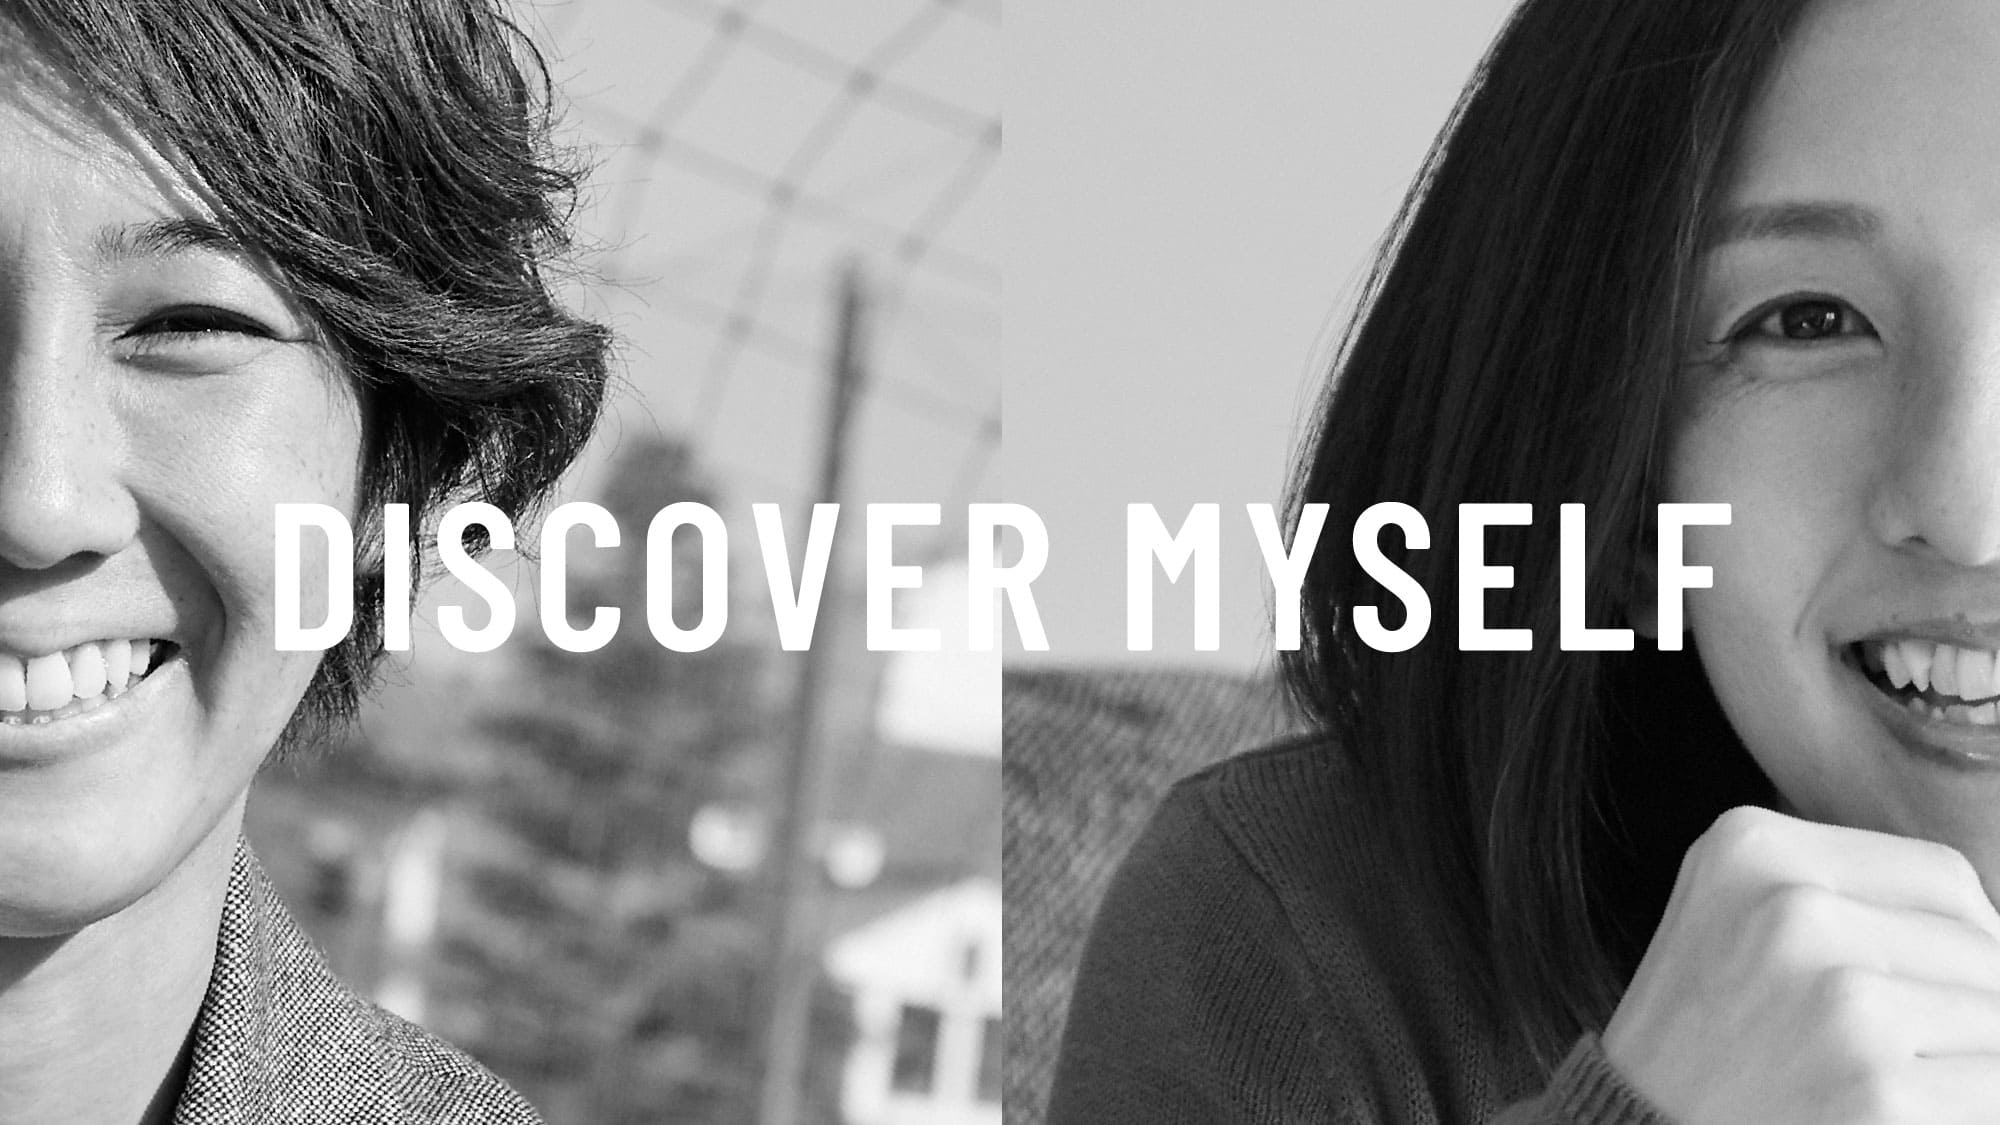 DISCOVER MYSELF